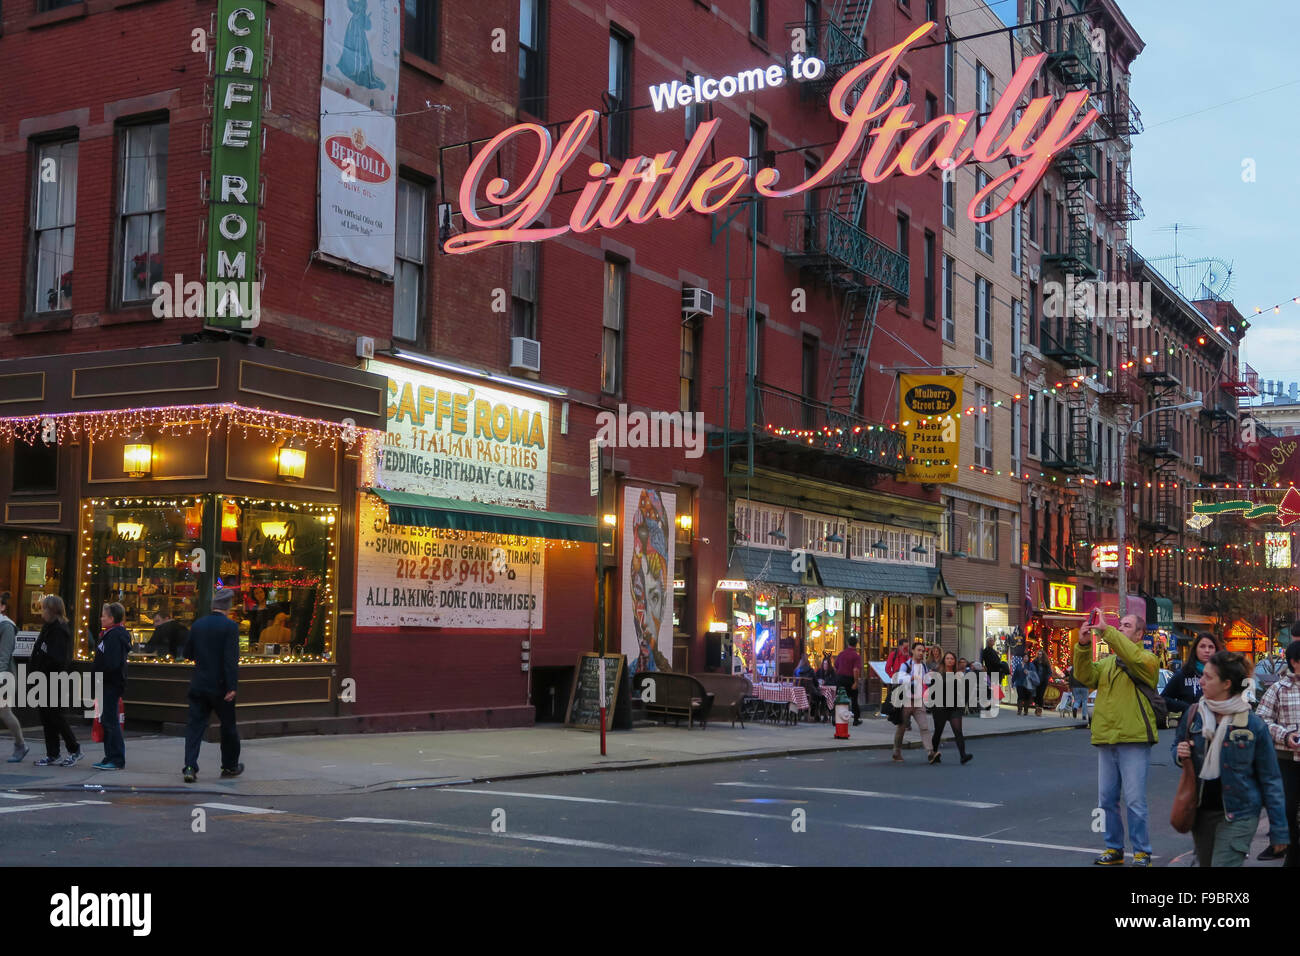 Welcome To Little Italy Sign Stock Photos & Welcome To Little Italy ...